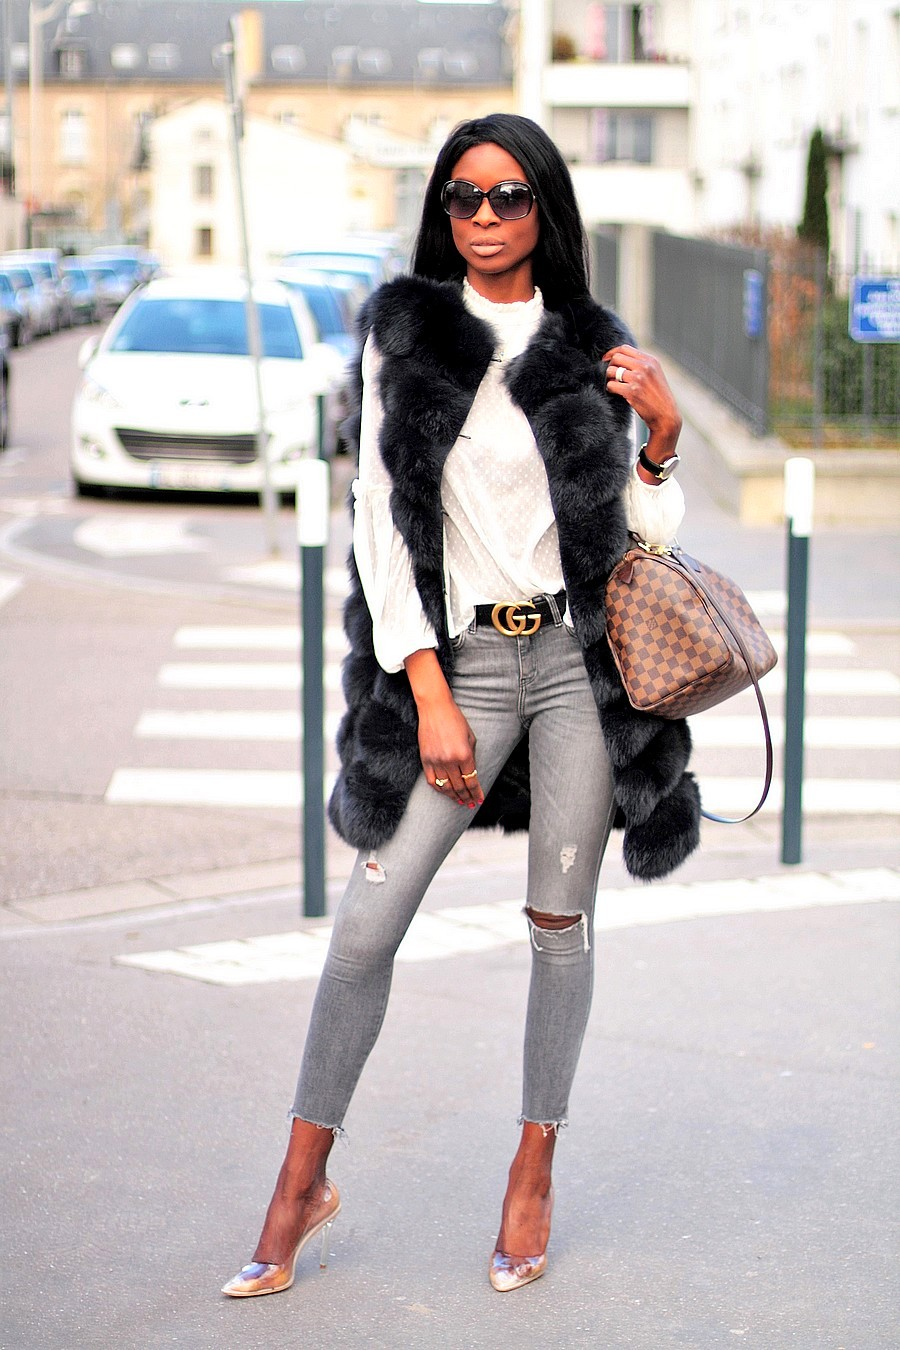 streetstyle-fashion-blogger-gucci-belt-fur-vest-ripped-jeans-clear-pumps